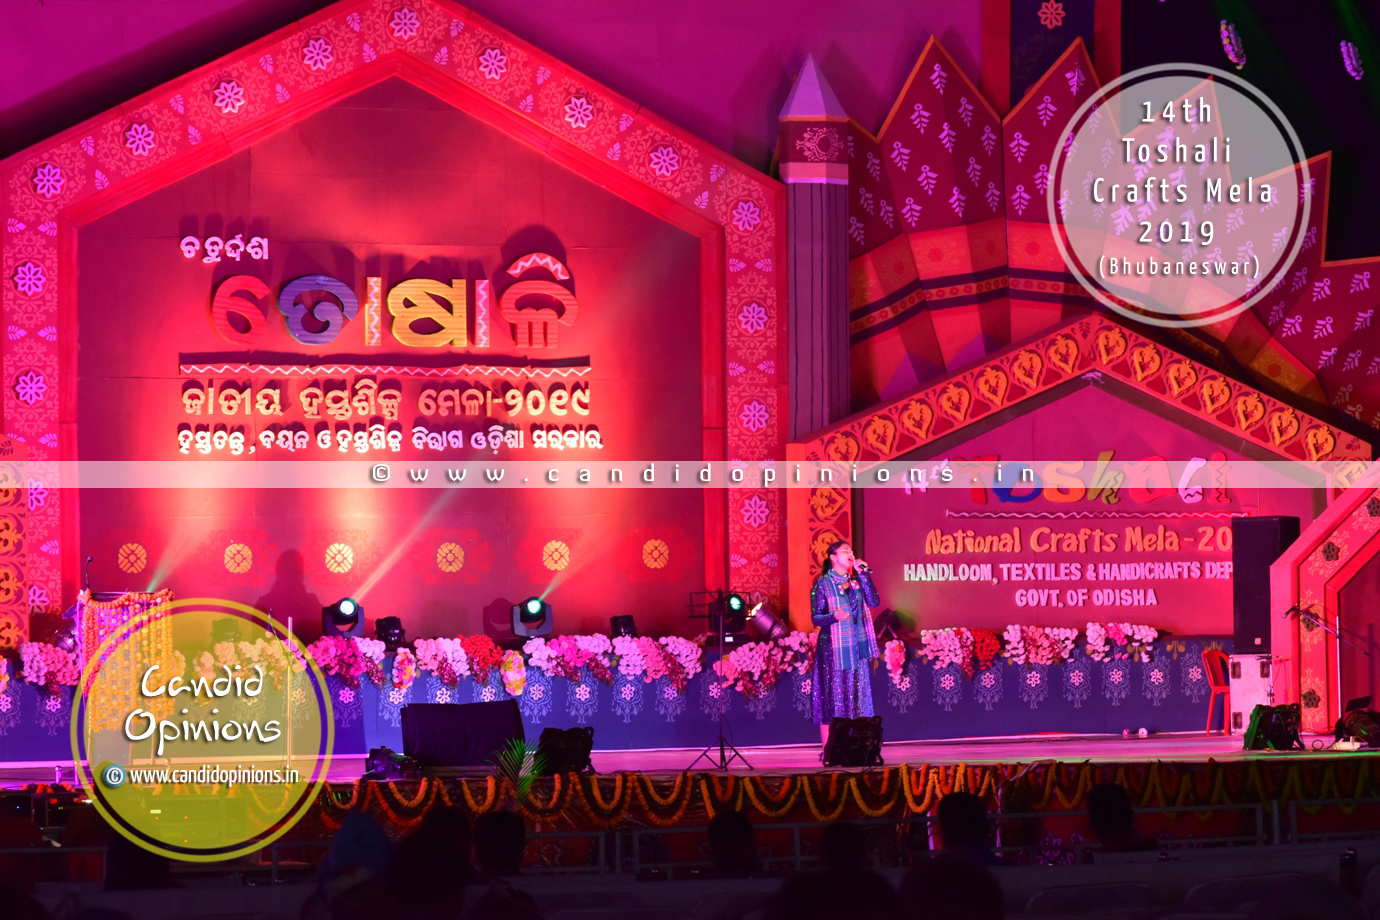 Toshali National Crafts Mela 2019 at Bhubaneswar